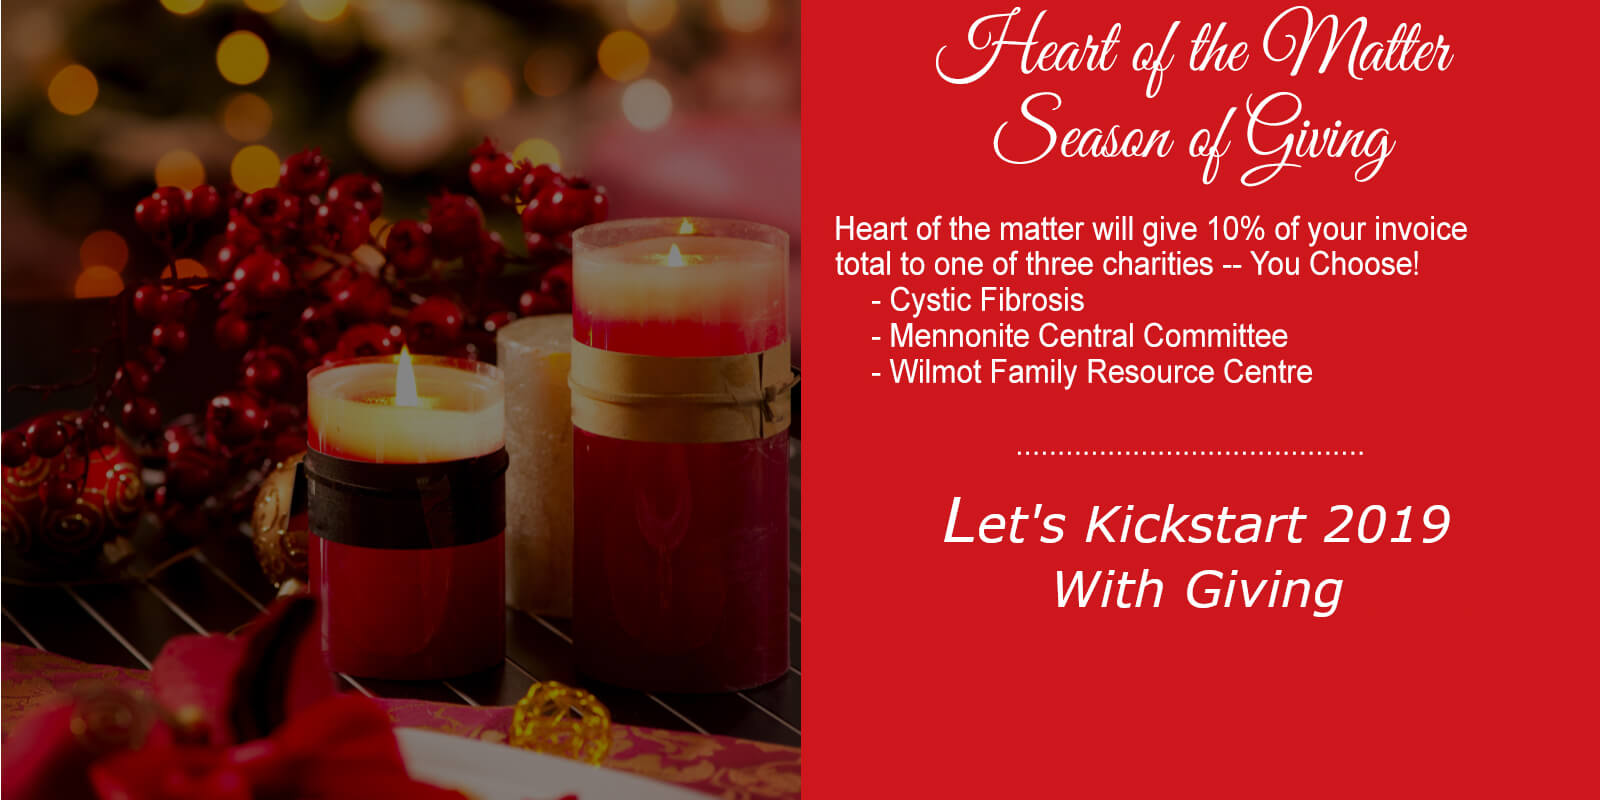 Season of Giving 2018